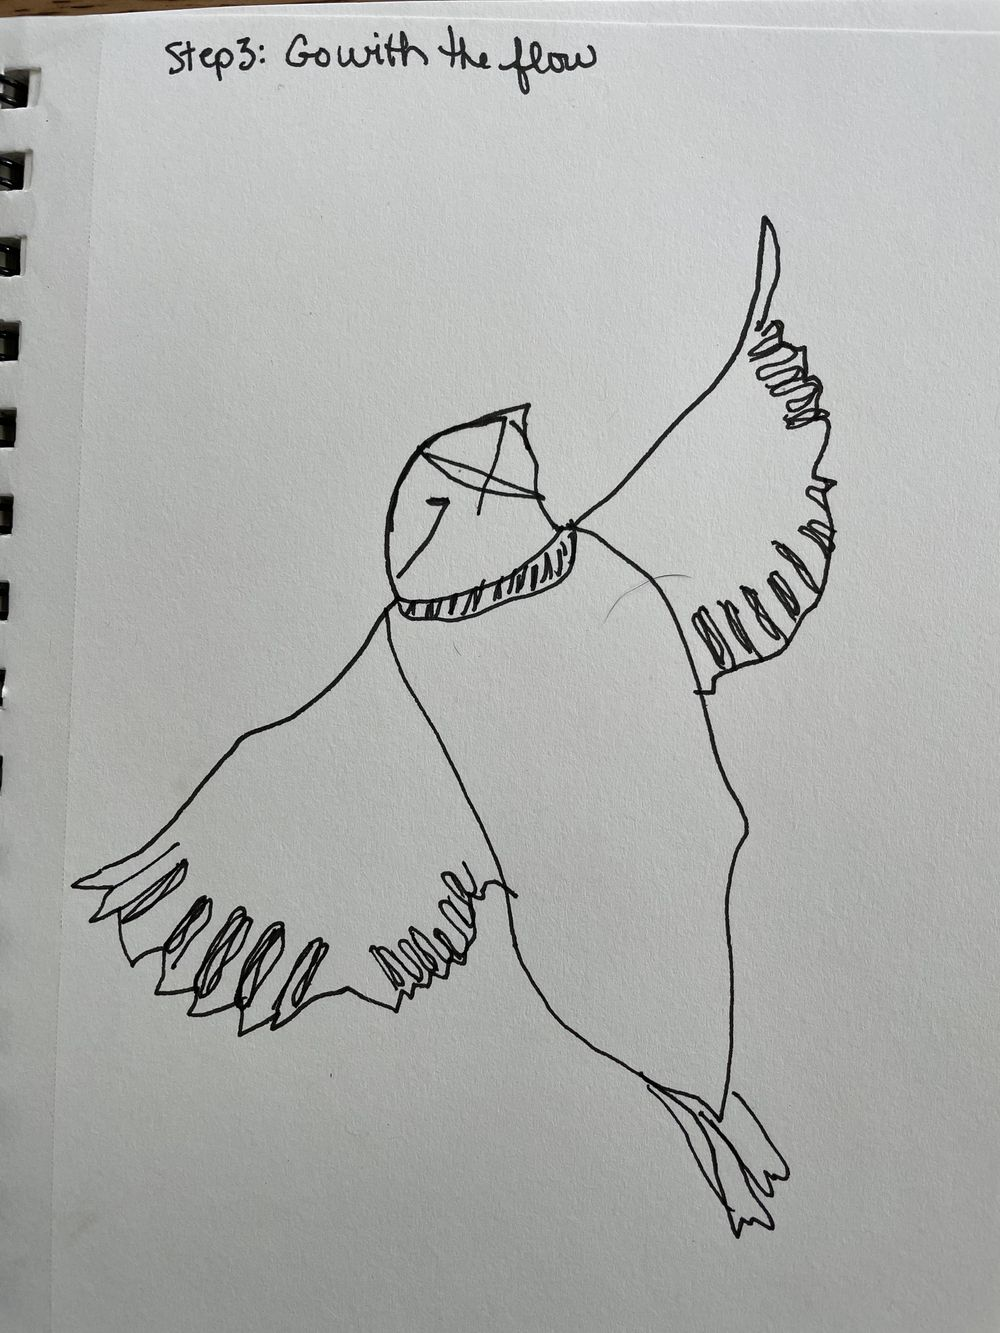 Line drawing practice - image 6 - student project